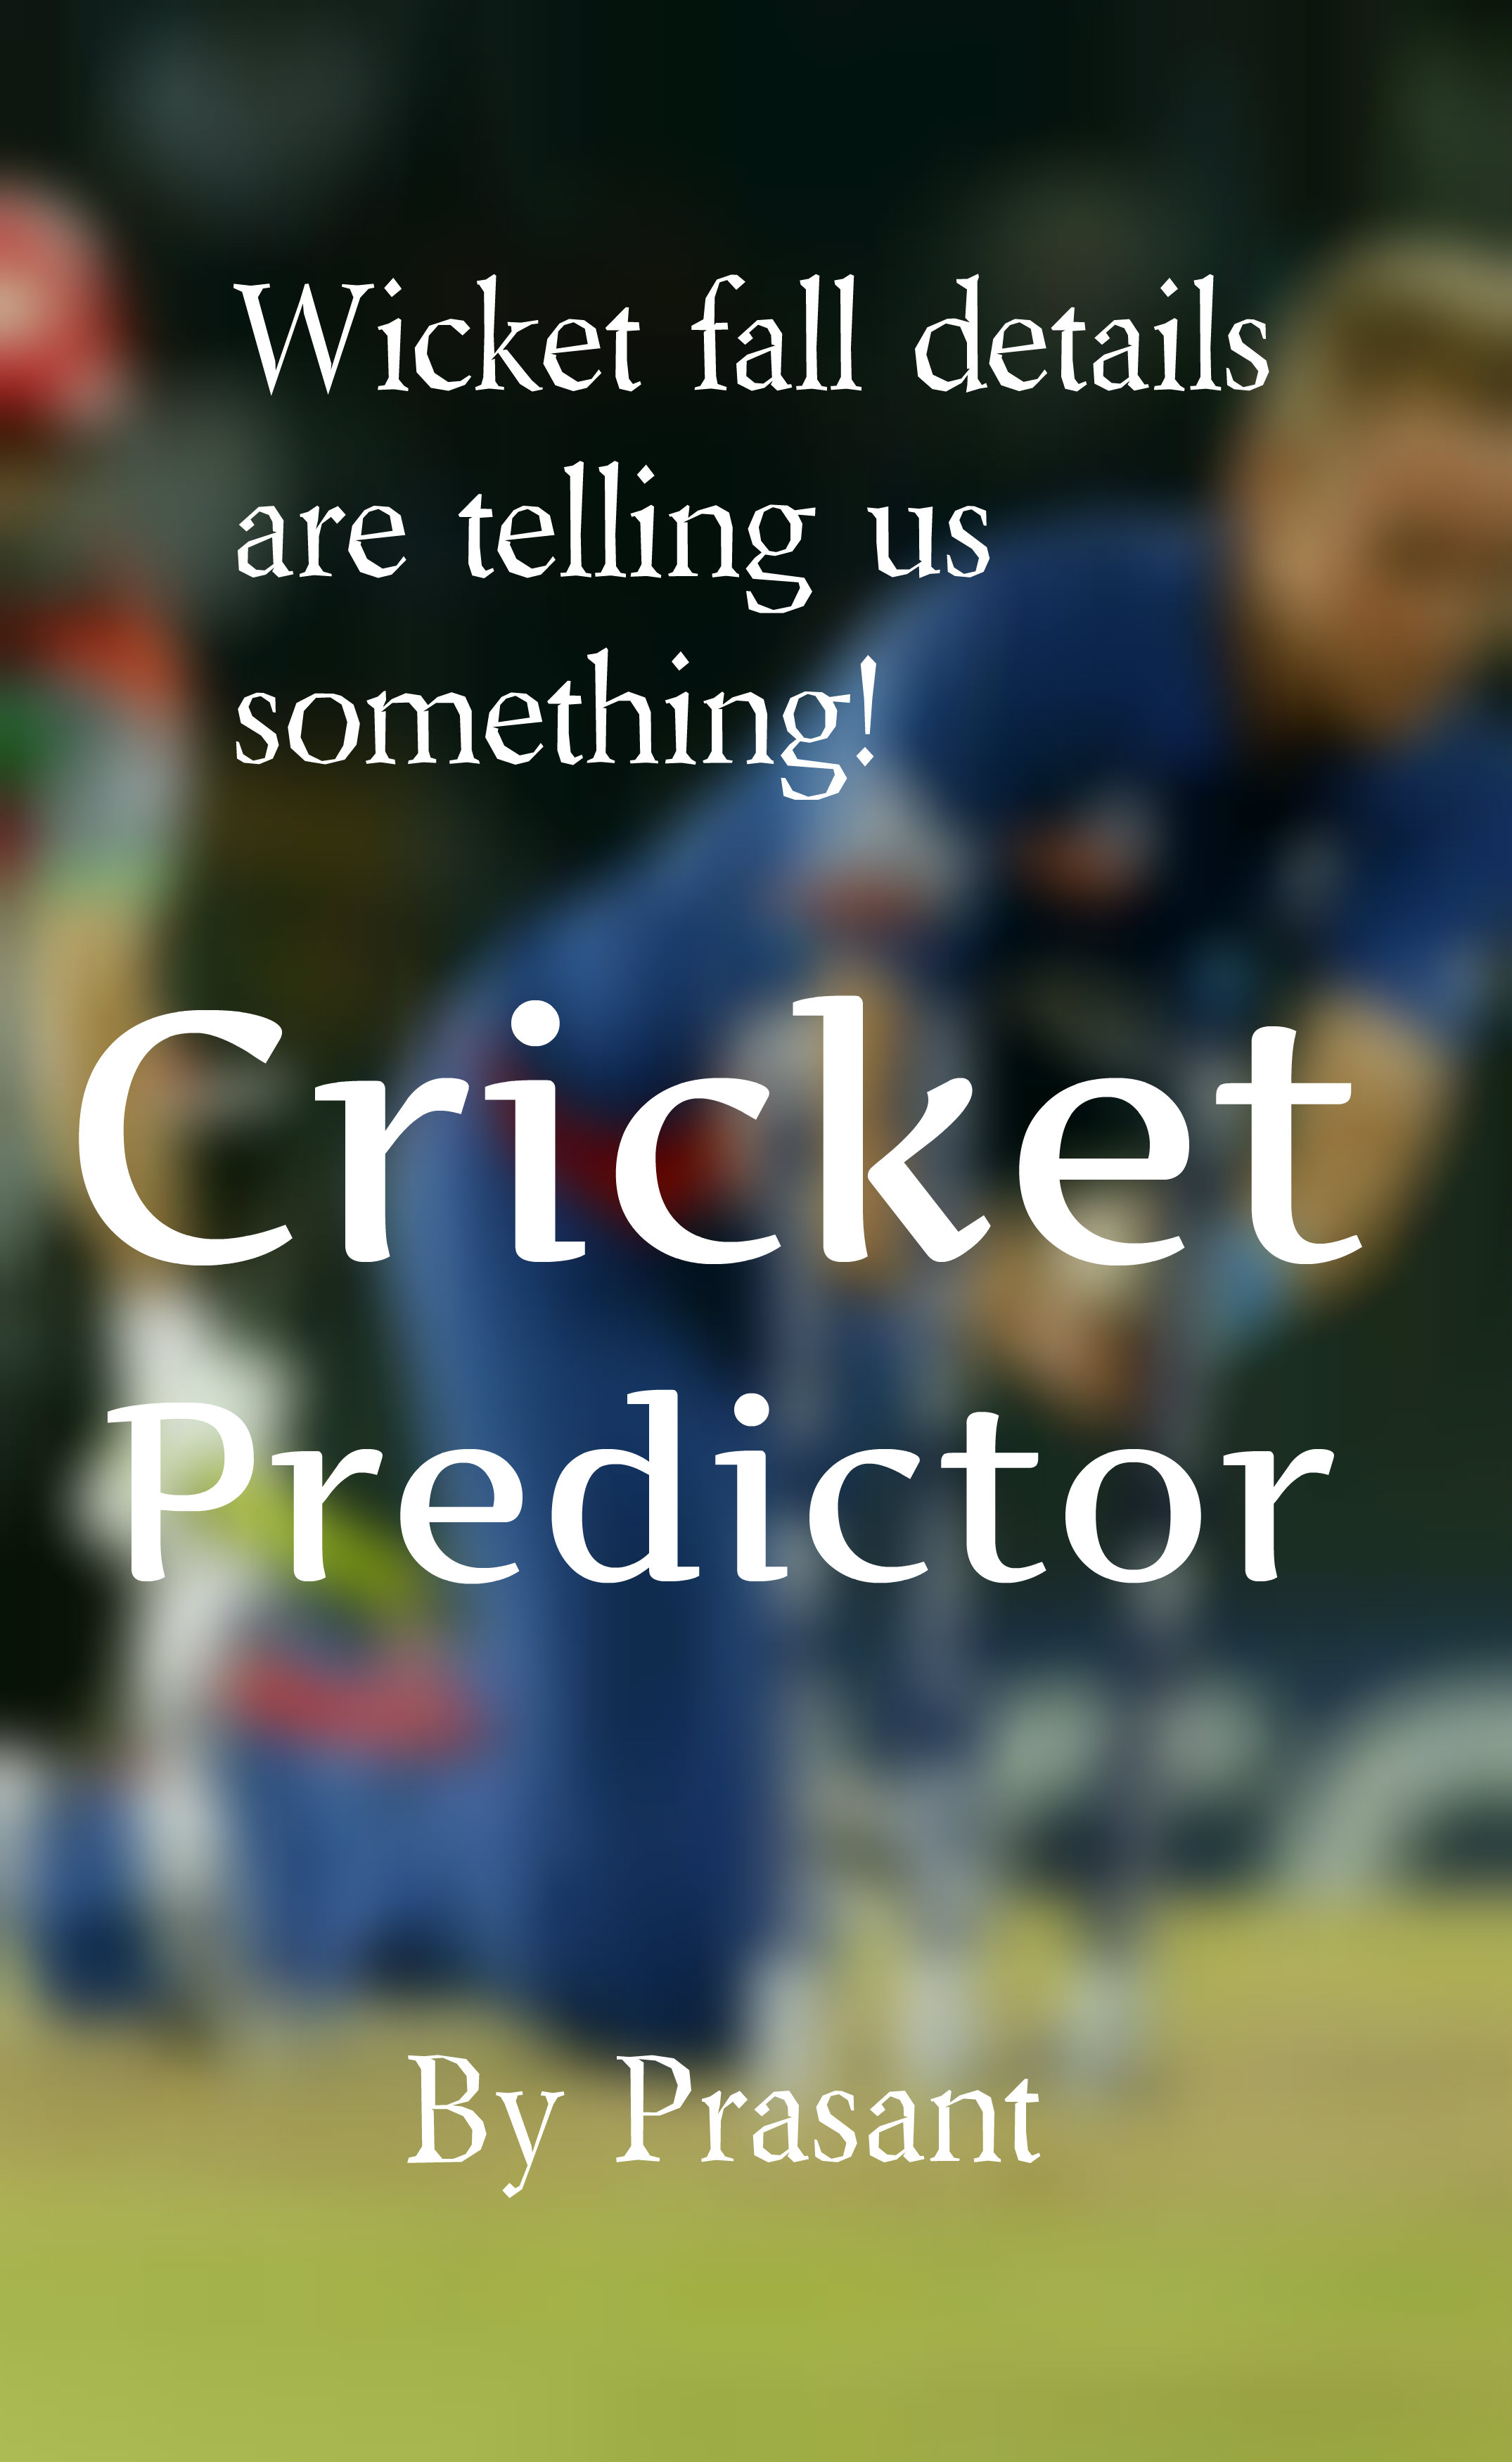 Cricket Predictor, an Ebook by Prasant